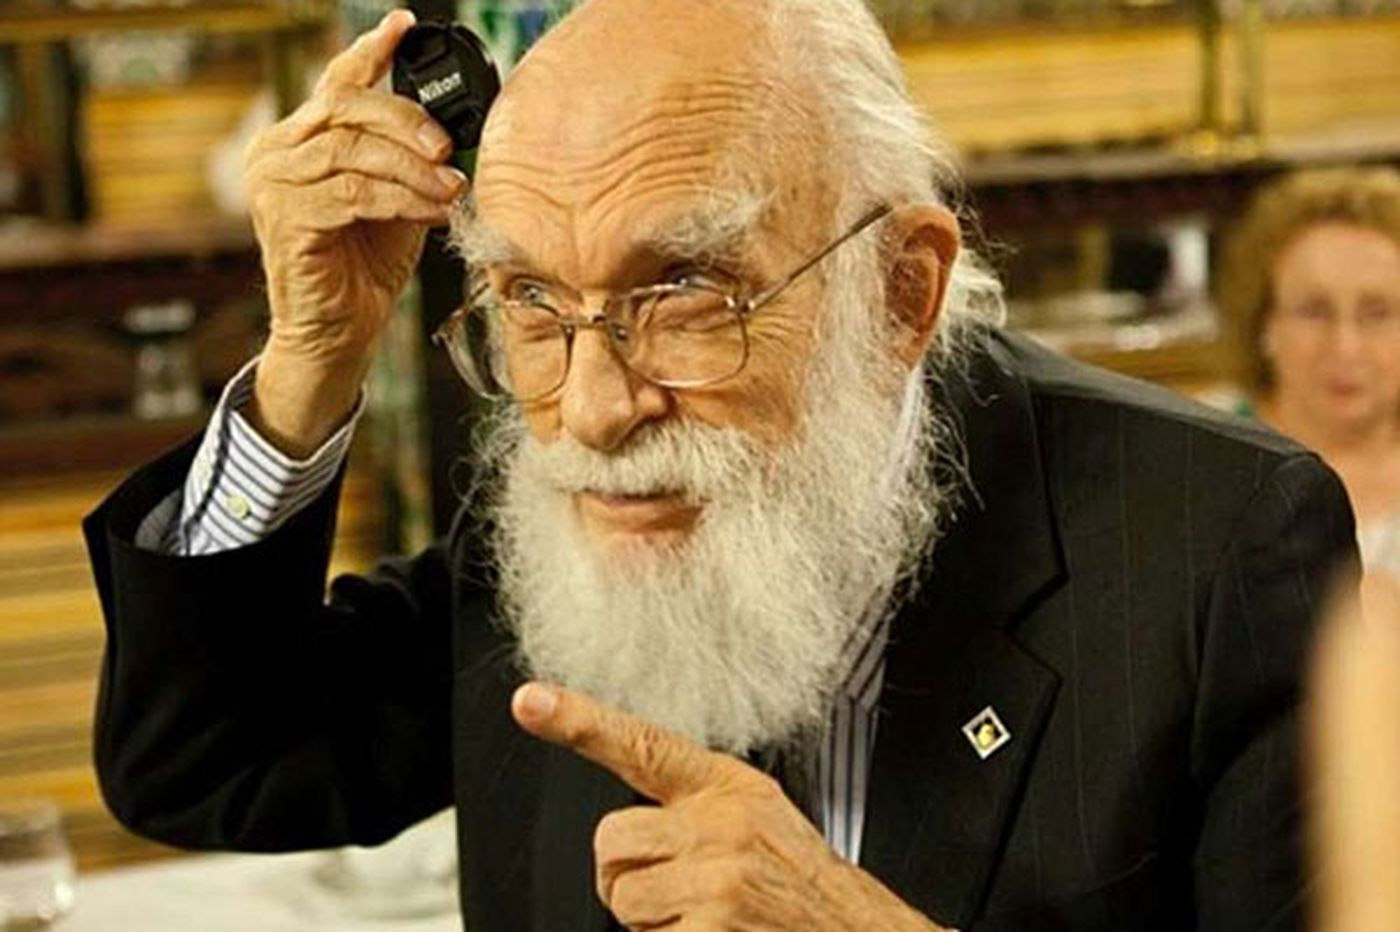 'An Honest Liar': The Amazing Randi's life of trickery and debunking fakers